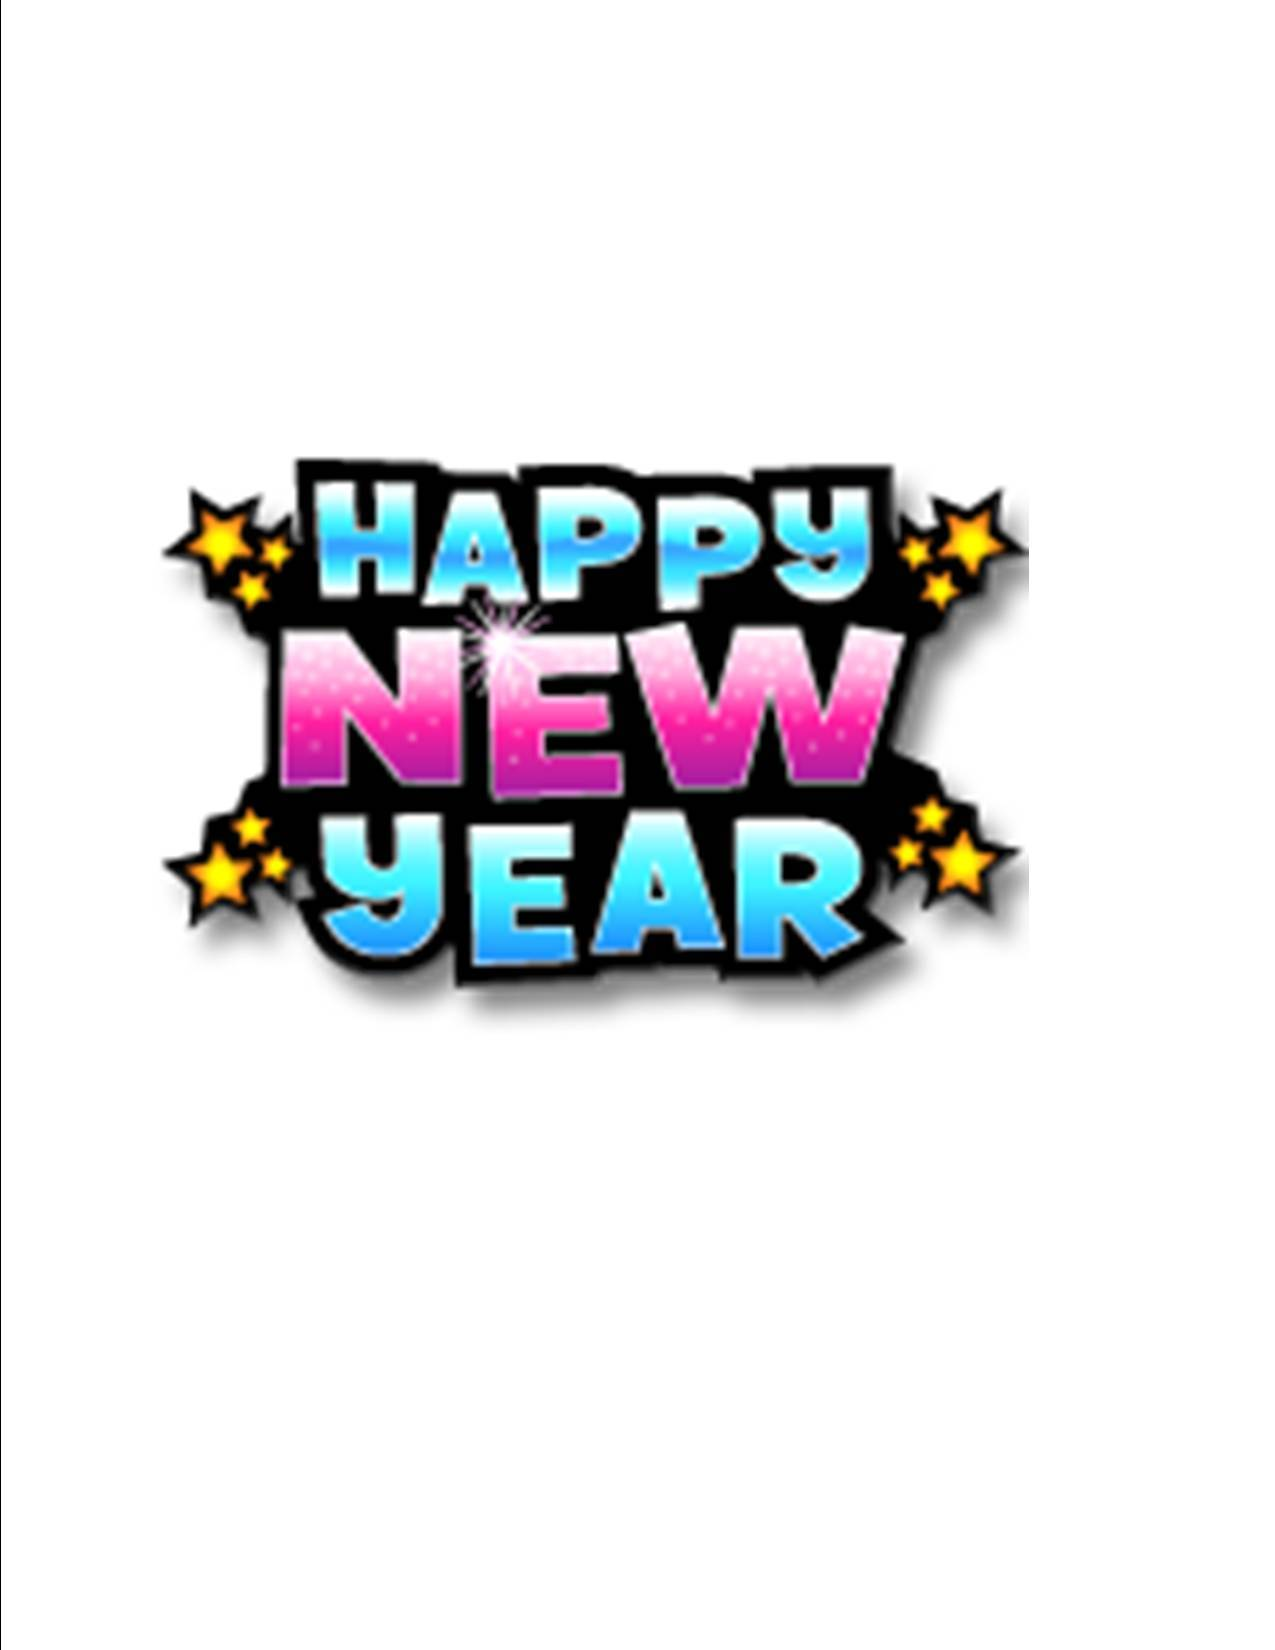 2008 clipart banner free New years 2008 clipart 6 » Clipart Portal banner free